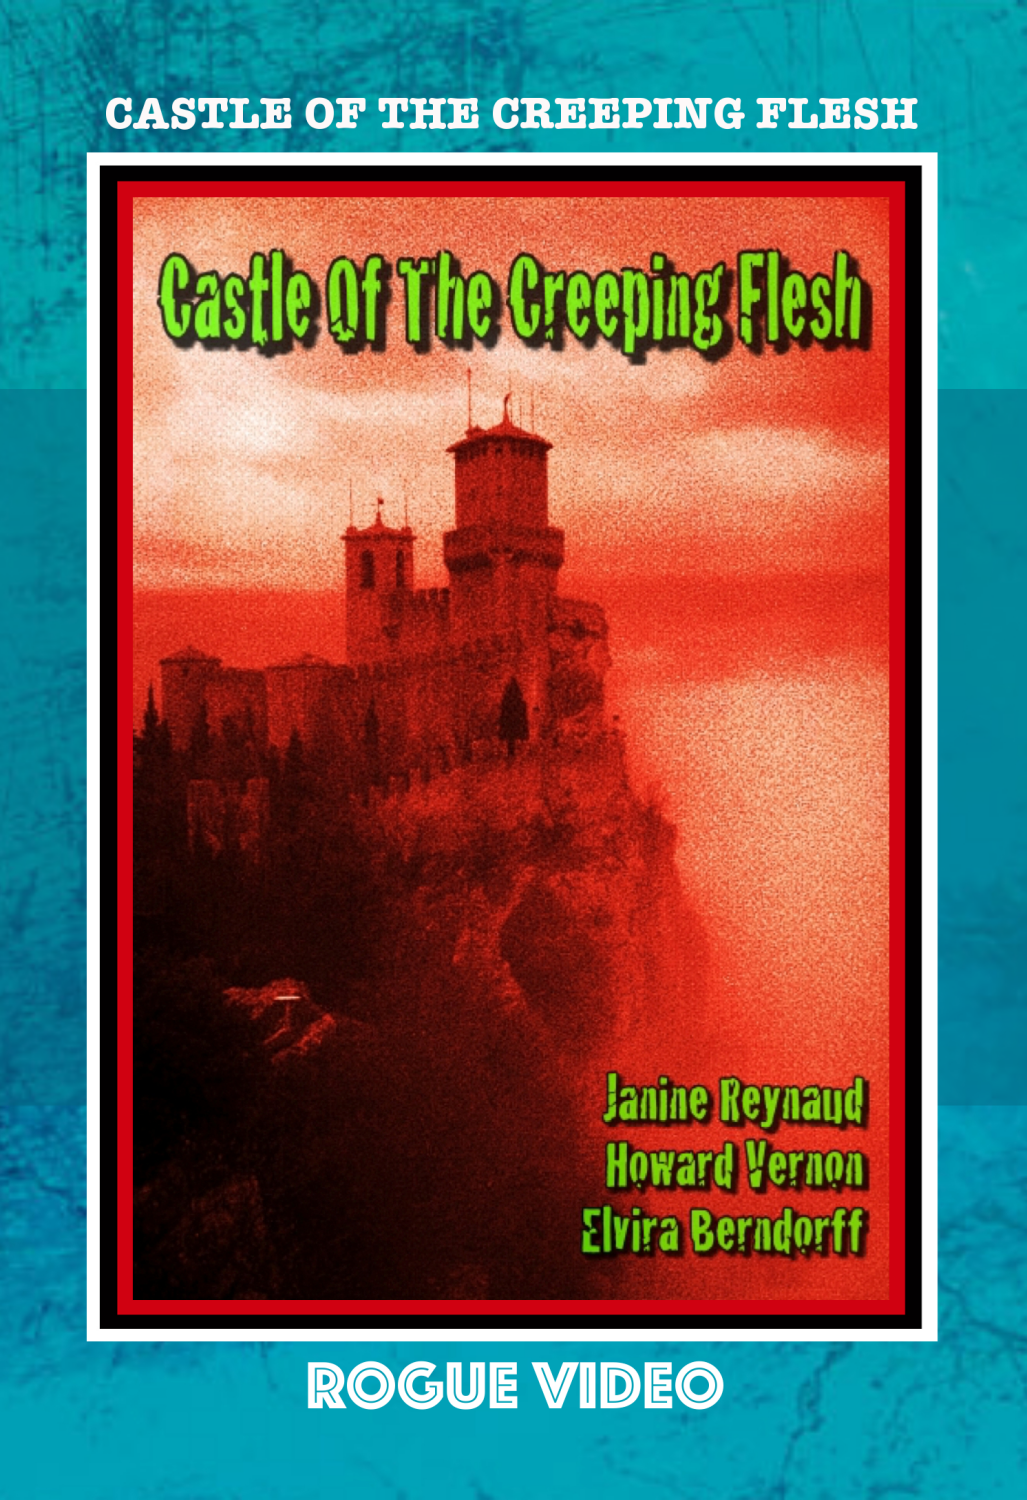 "ROGUE VIDEO - rare horror DVDs - cult films & fiction ""CASTLE OF THE CREEPING FLESH"" (1968)"